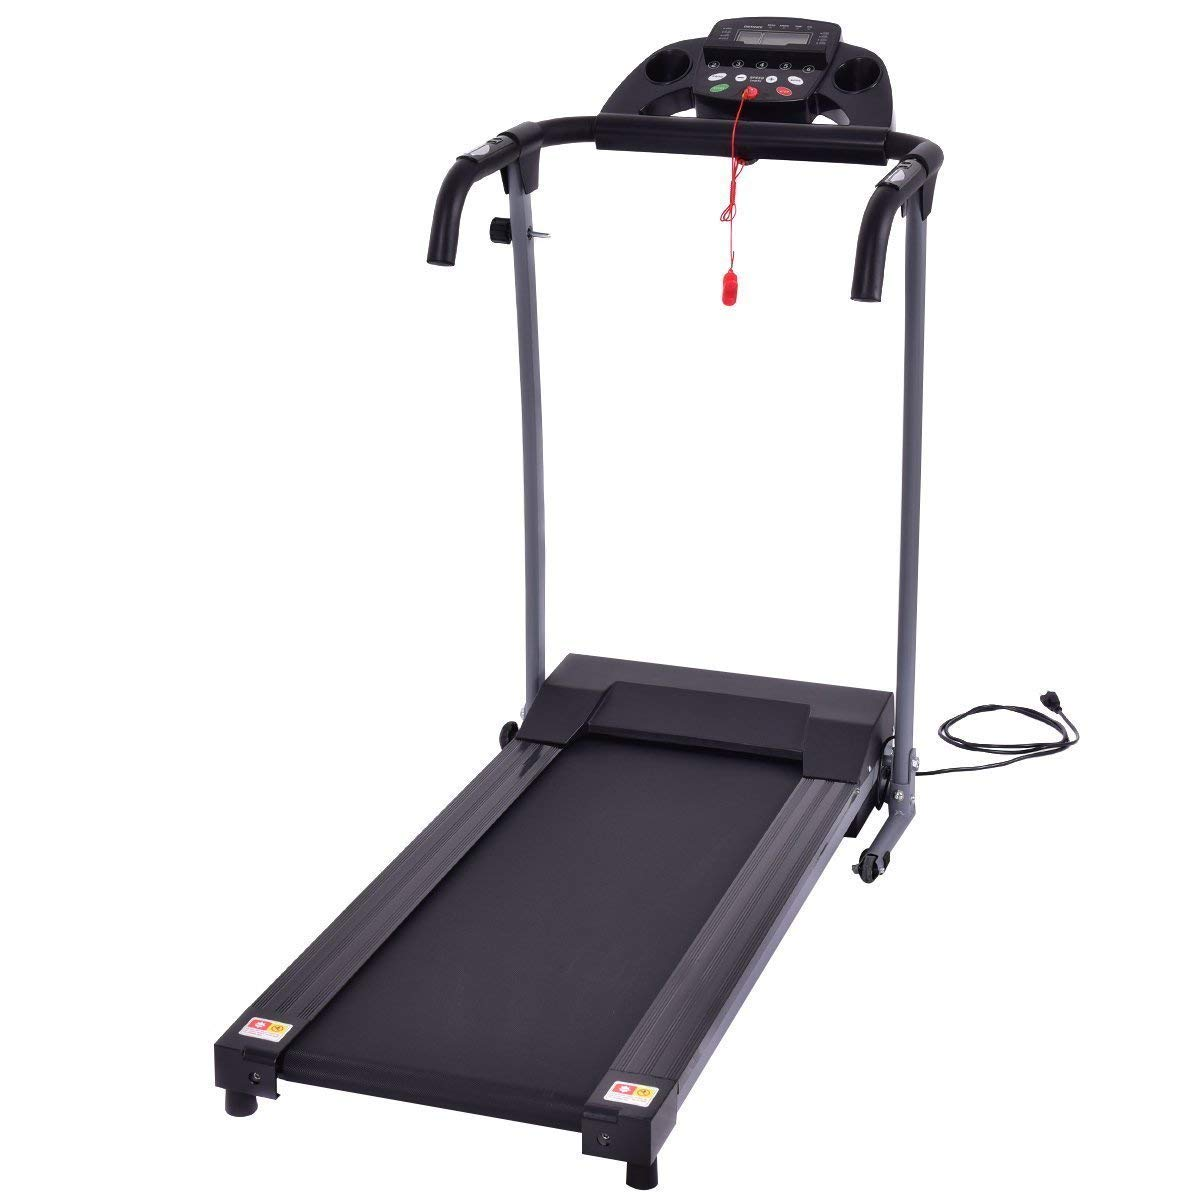 GYMAX Folding Exercise Treadmill Fitness Electric Treadmill Electric Motorized Power Fitness Running Machine 800W W/IPAD Mobile Phone Holder (Black) by GYMAX (Image #7)